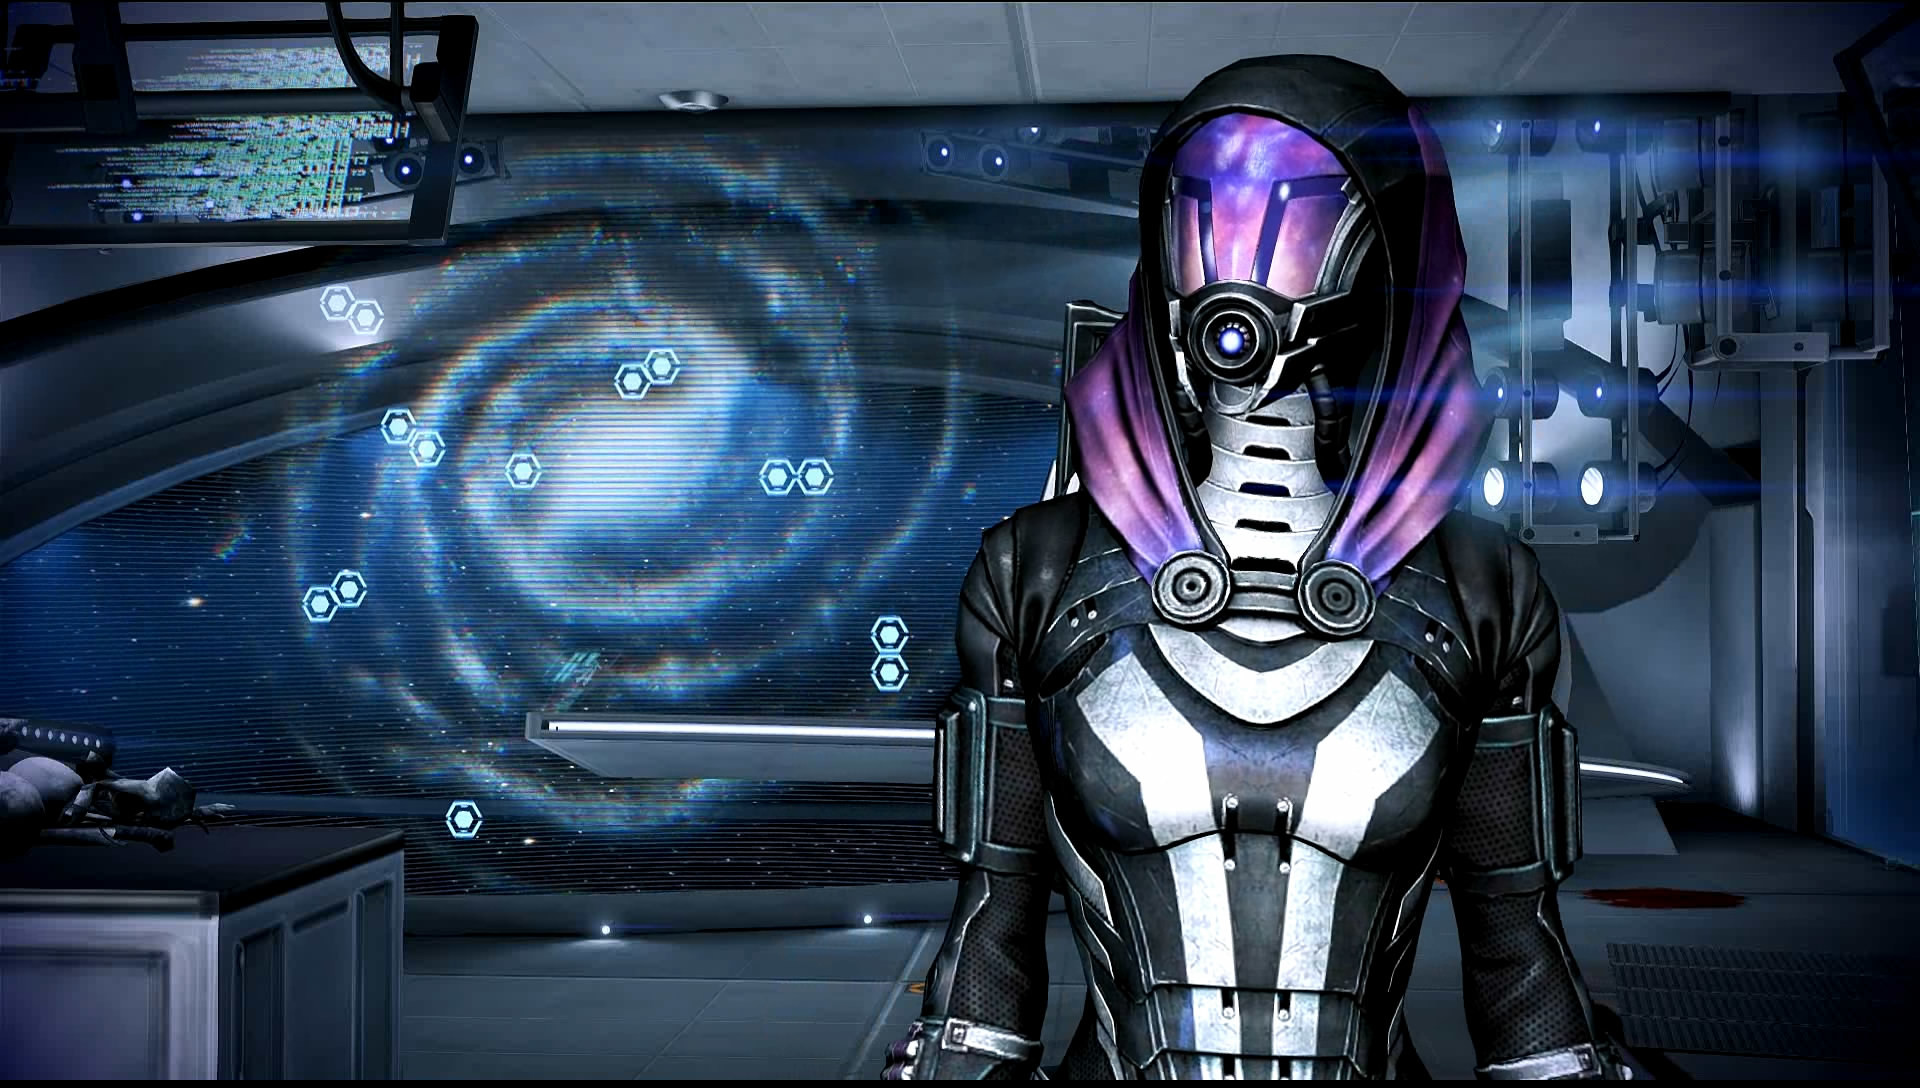 … Mass Effect 3 Tali in Dr Brysons Office Dreamscene by droot1986